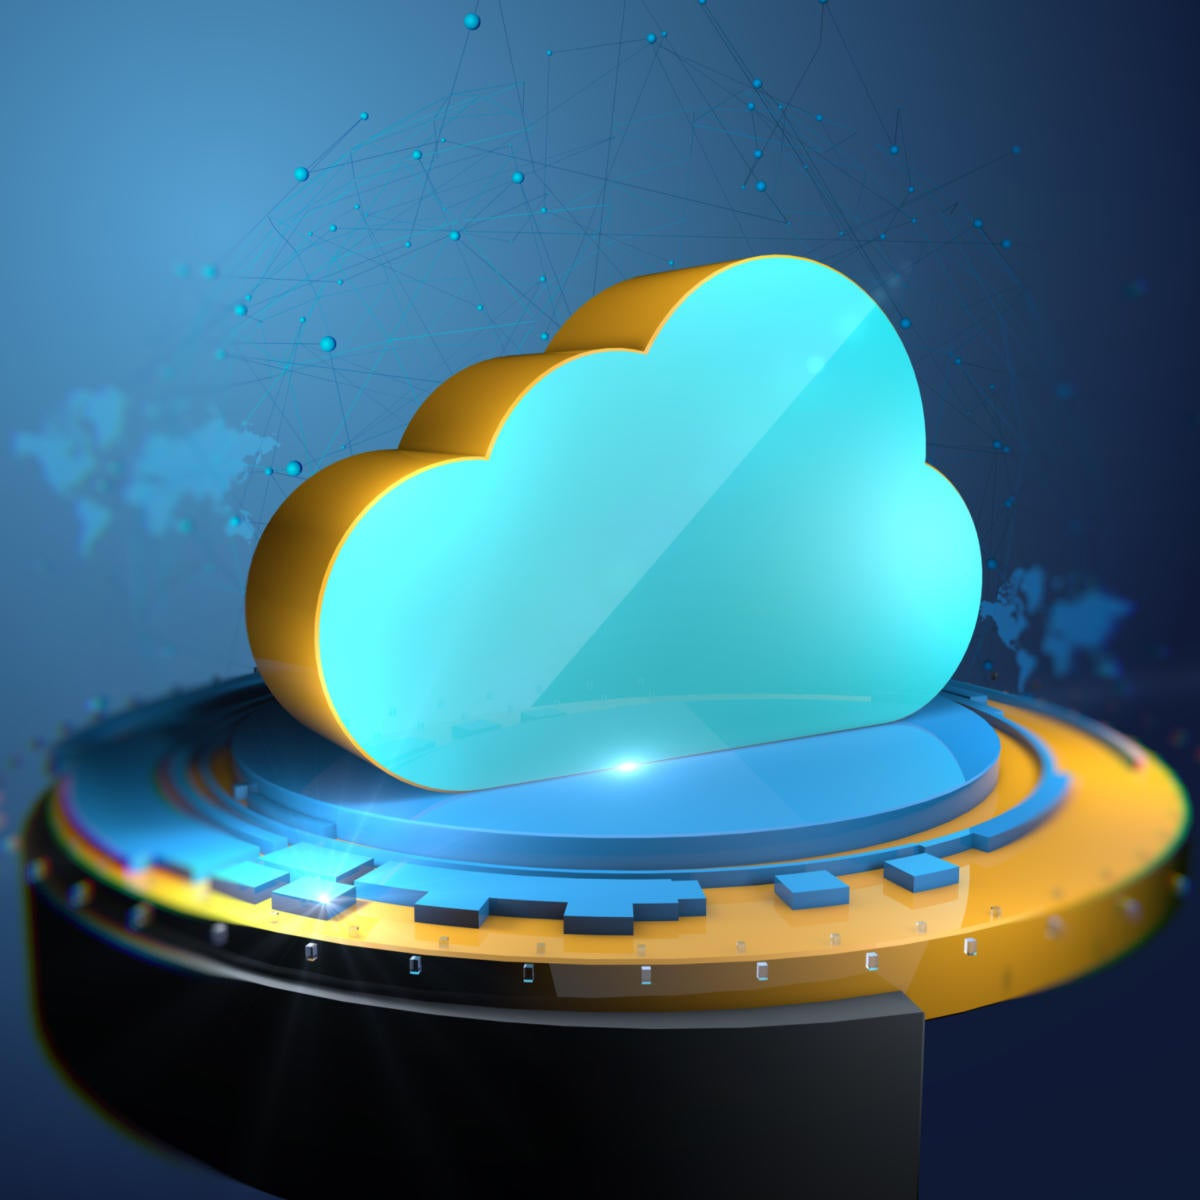 Microsoft Azure Stack brings the cloud to your data center